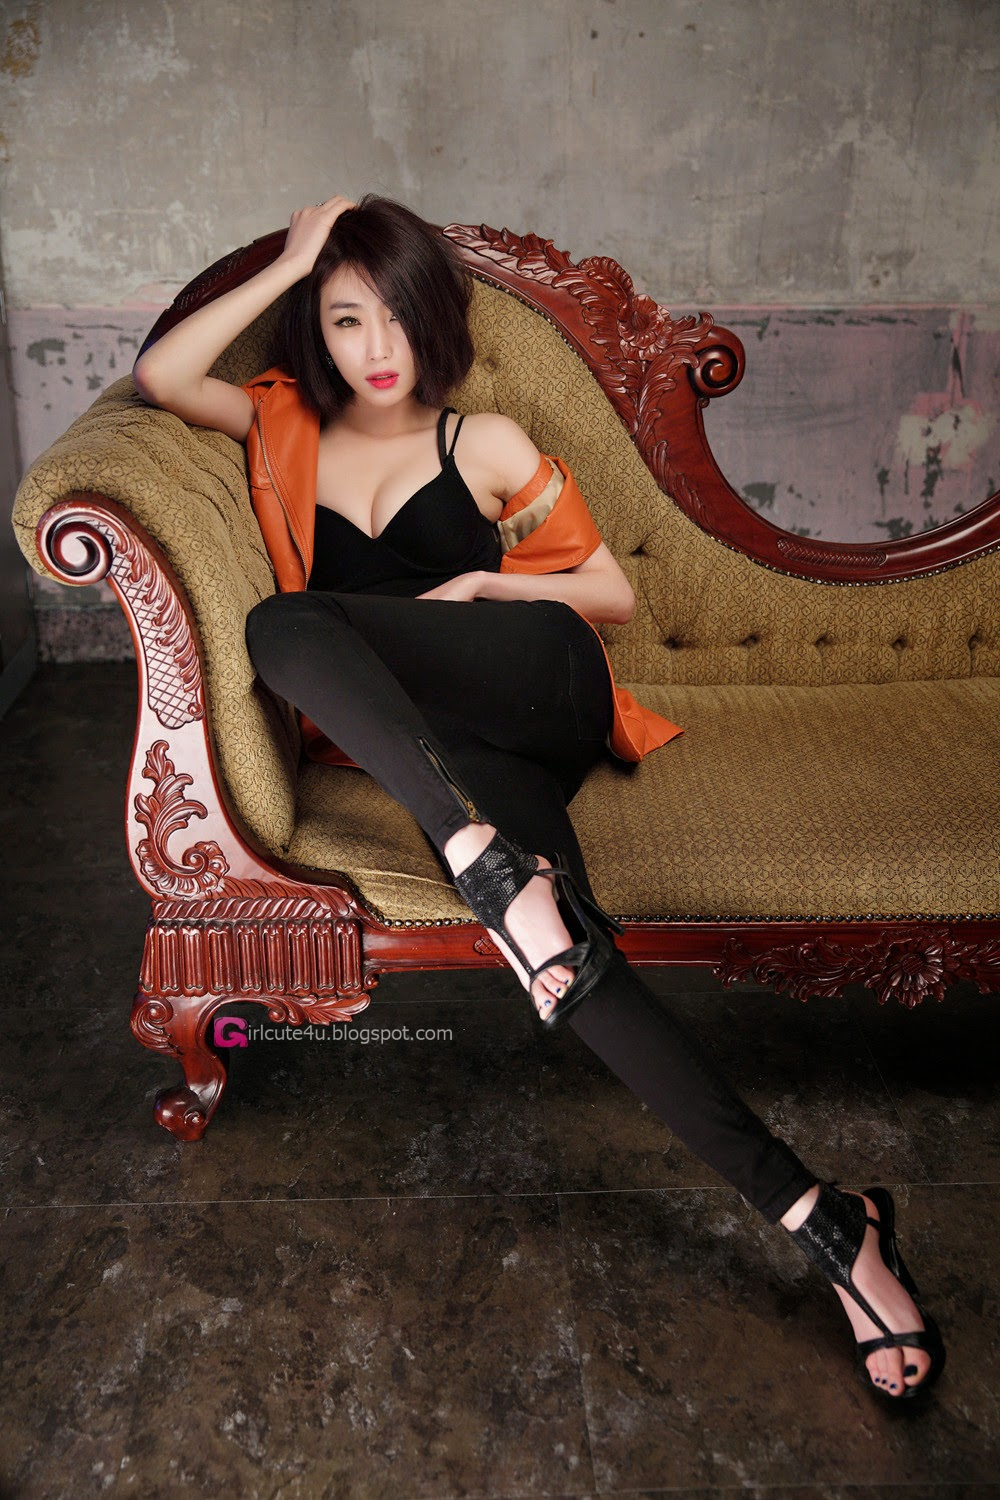 2 Kim Mi Hye - very cute asian girl-girlcute4u.blogspot.com